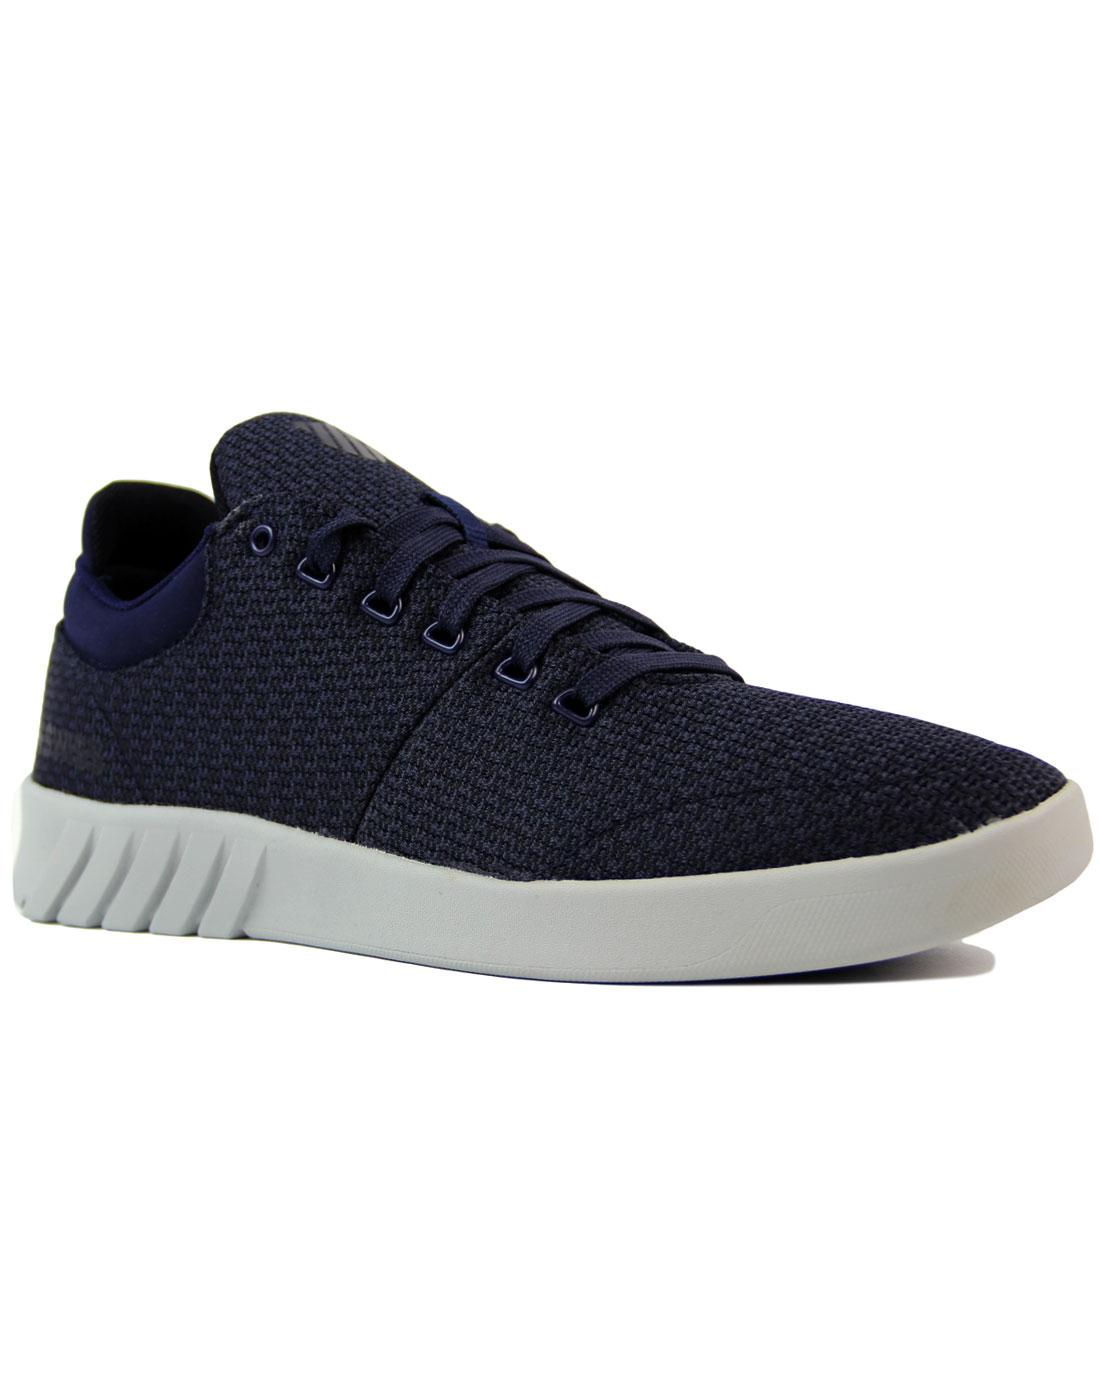 Aero Trainer T K-SWISS Retro Knit Upper Trainers